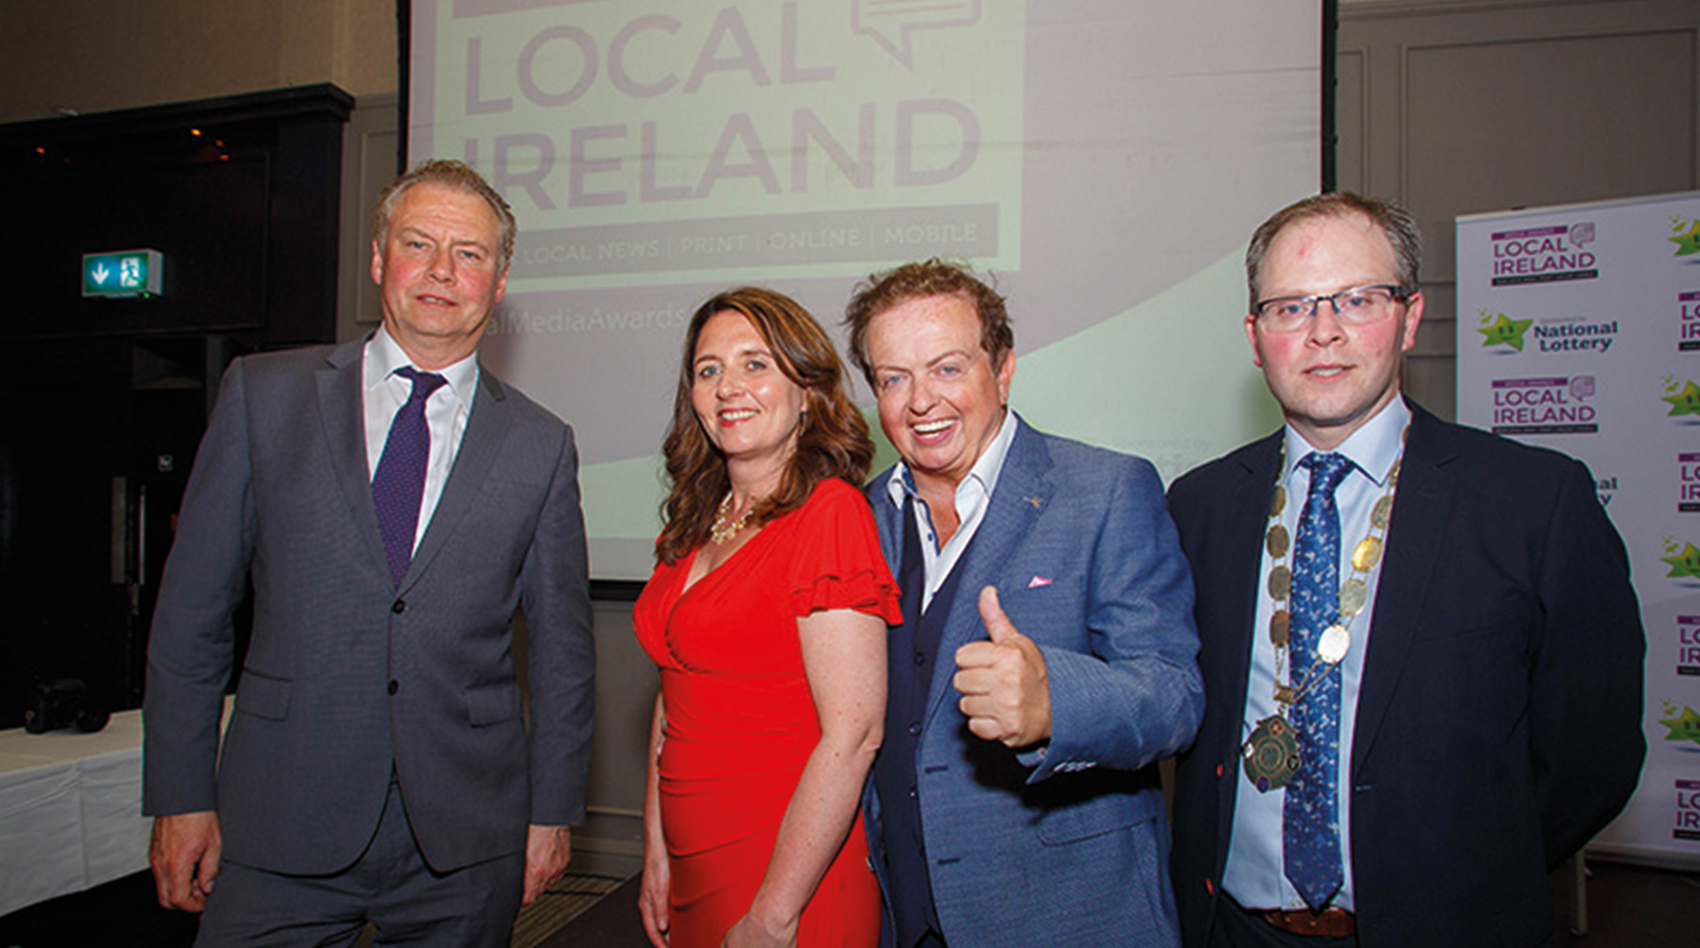 Local journalism celebrates as 12 media titles scoop awards at 4th Local Ireland Annual Media Awards